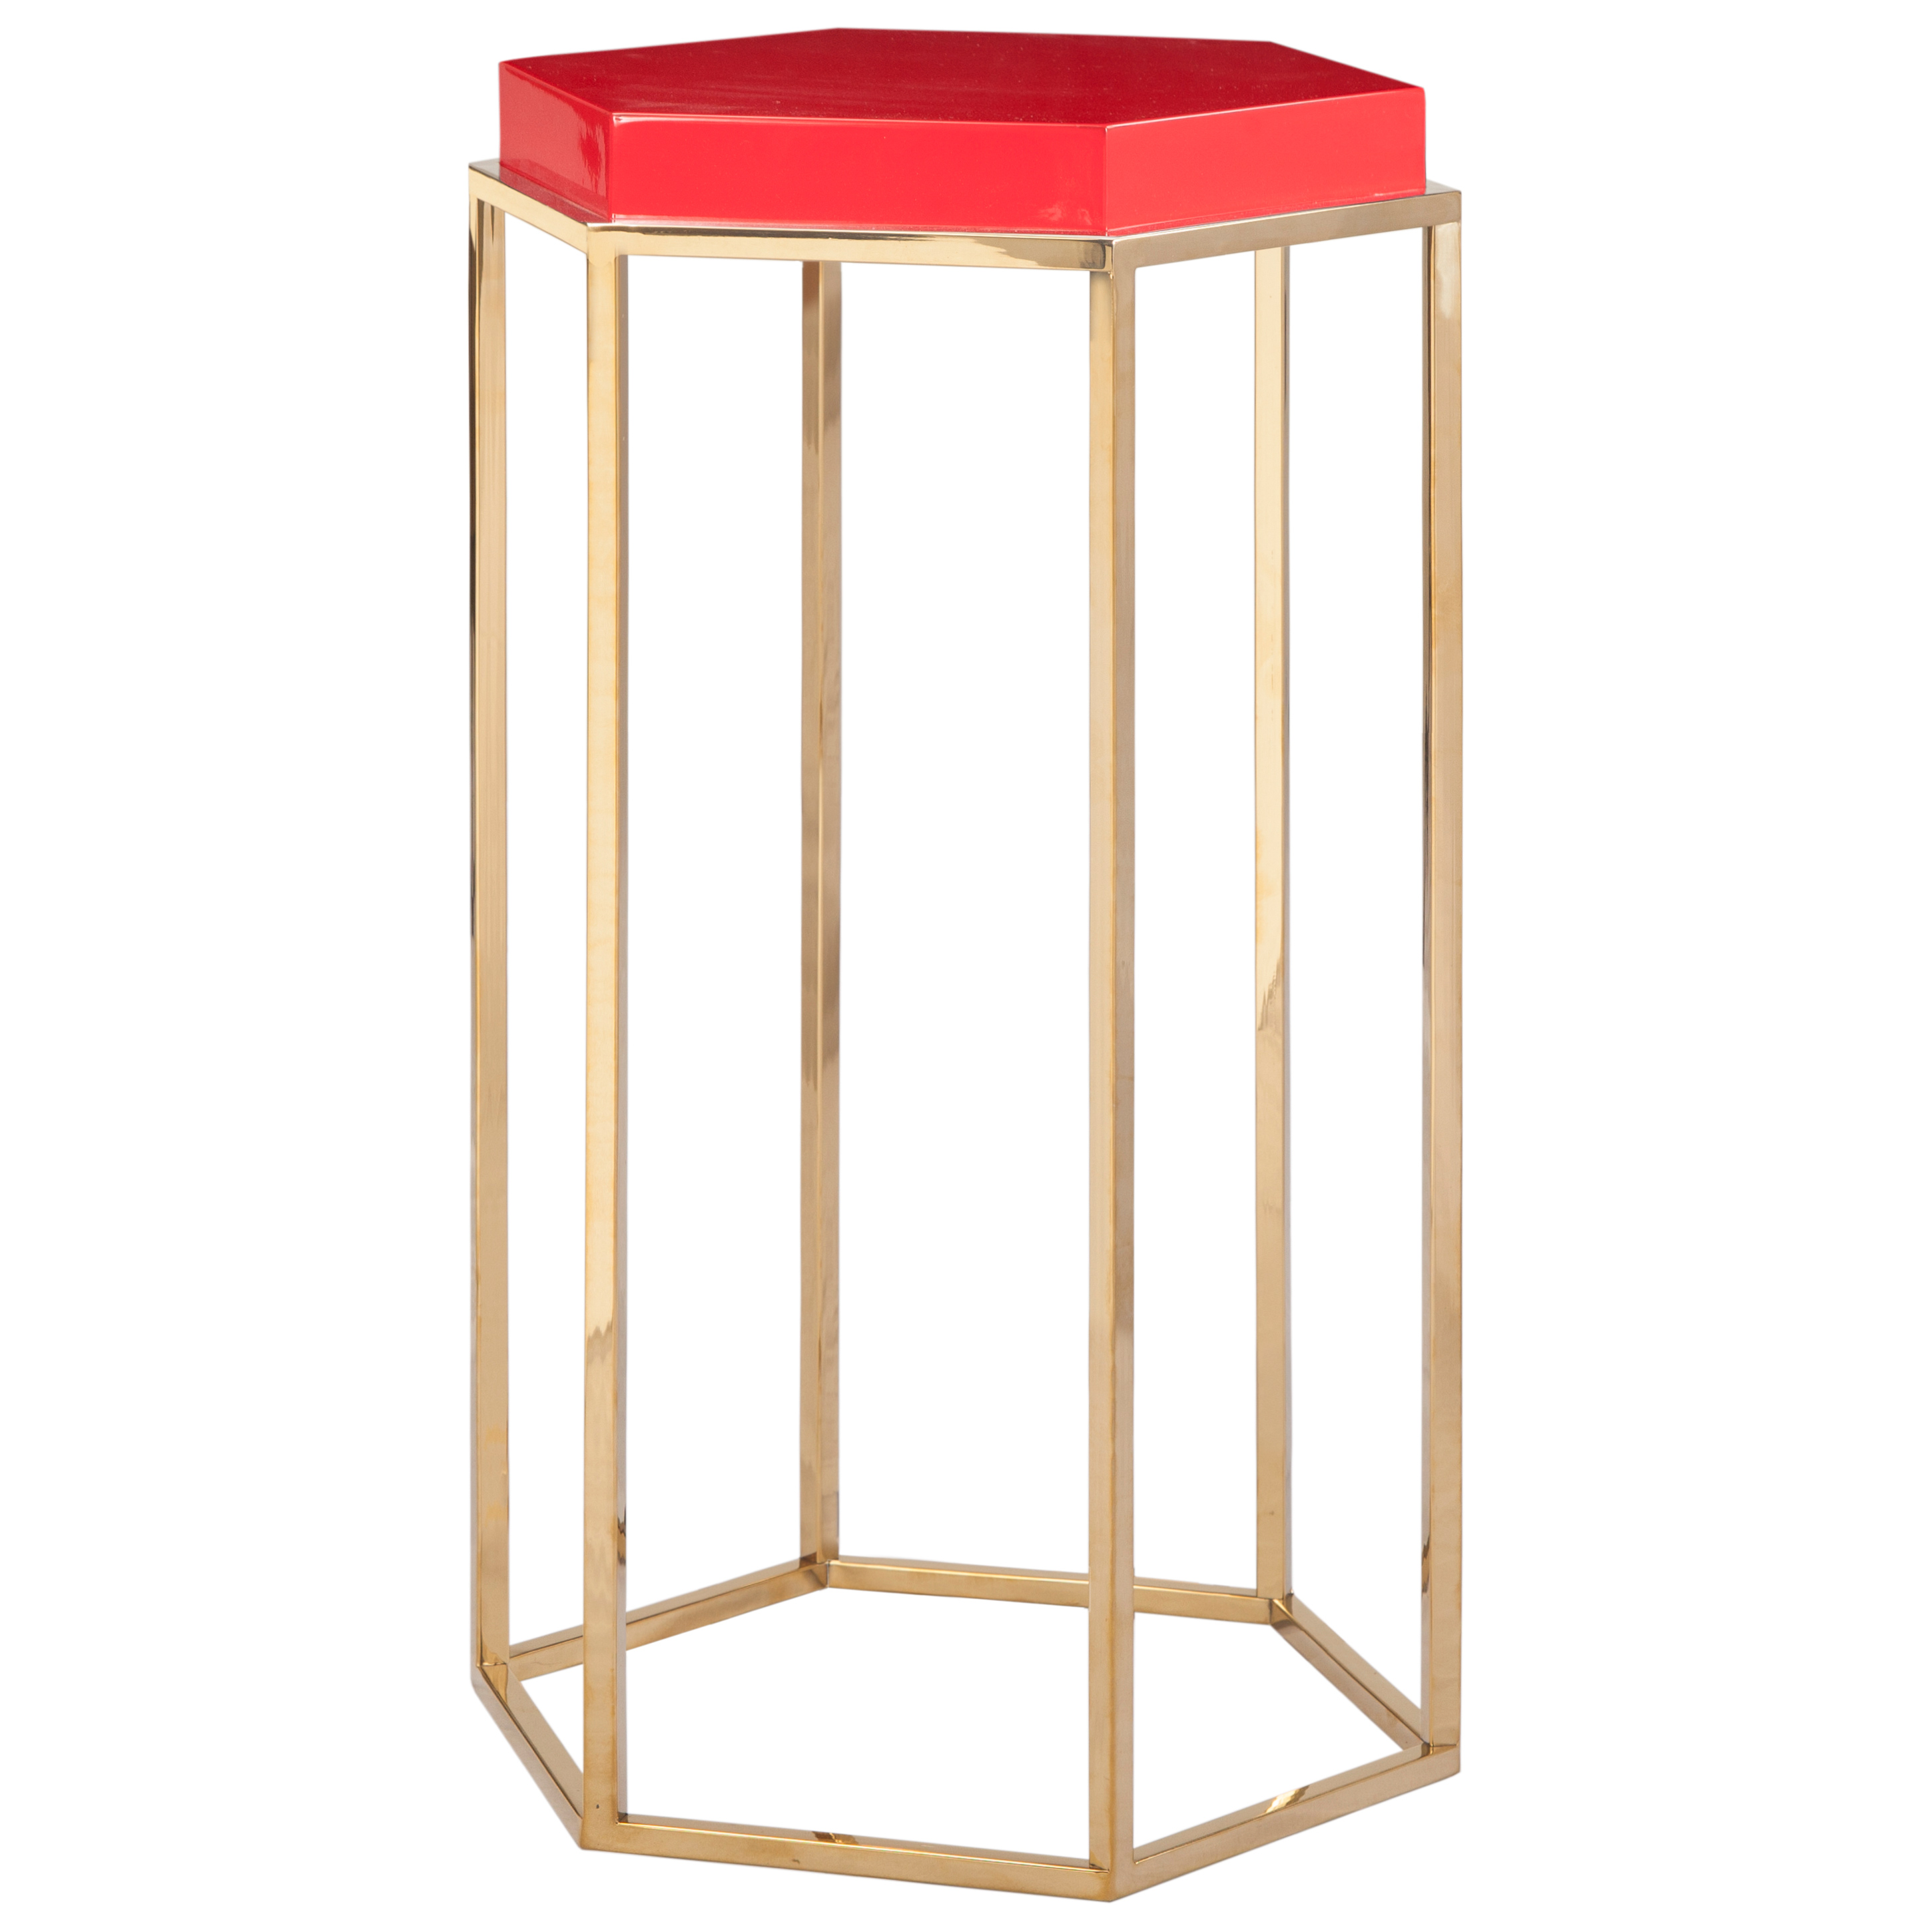 Lily Hollywood Regency Hexagonal Red Lacquer Brass Side End Table